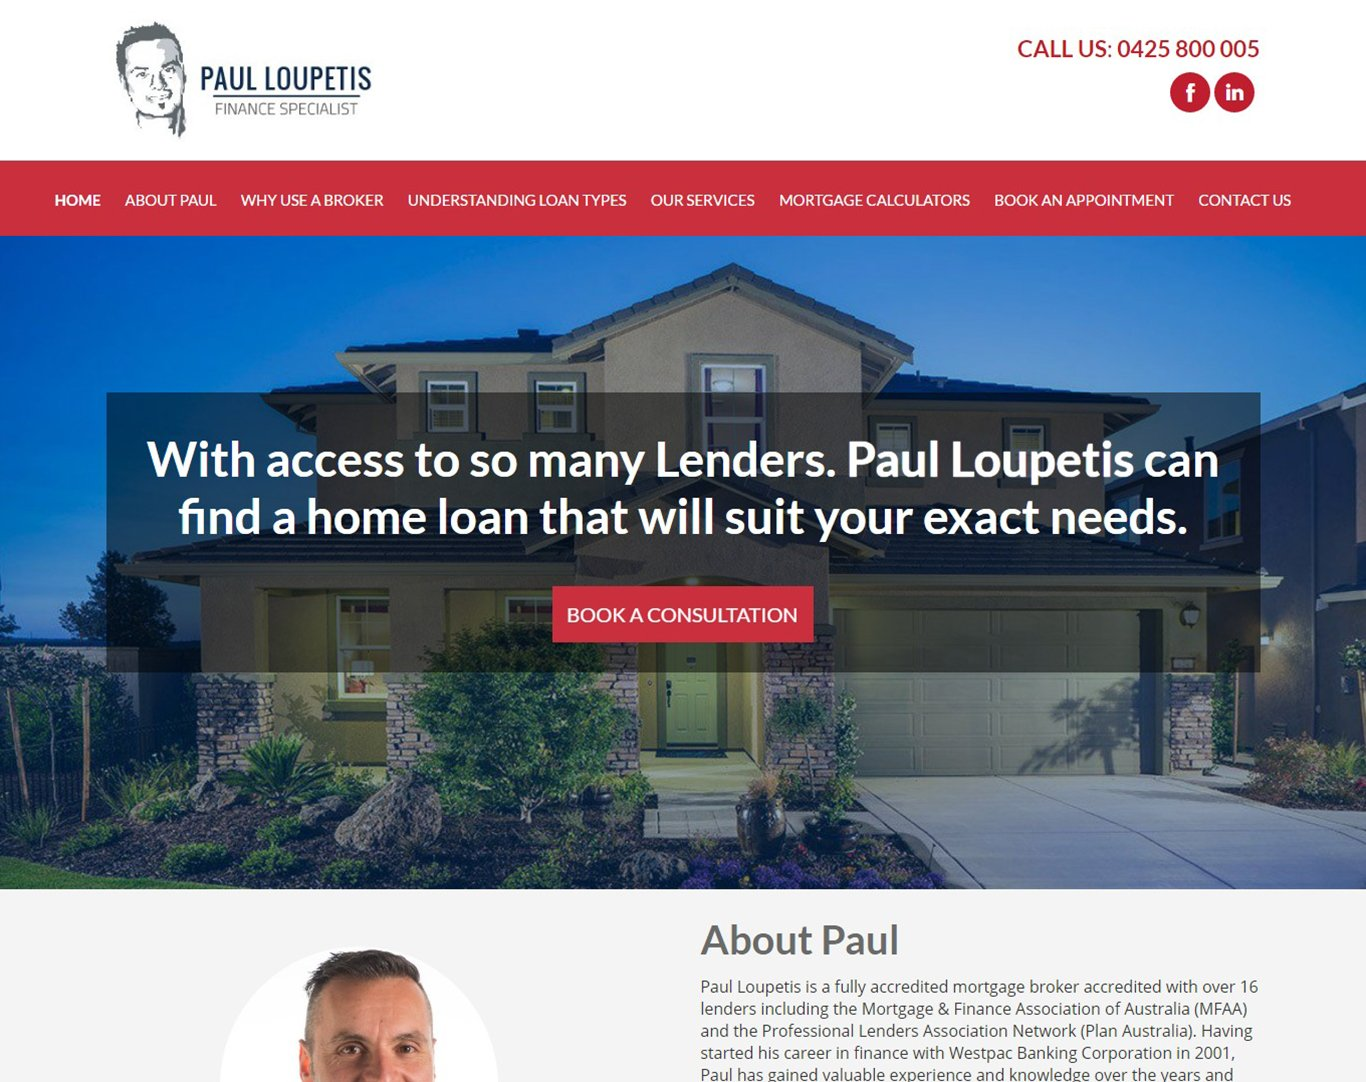 websites for mortgage brokers